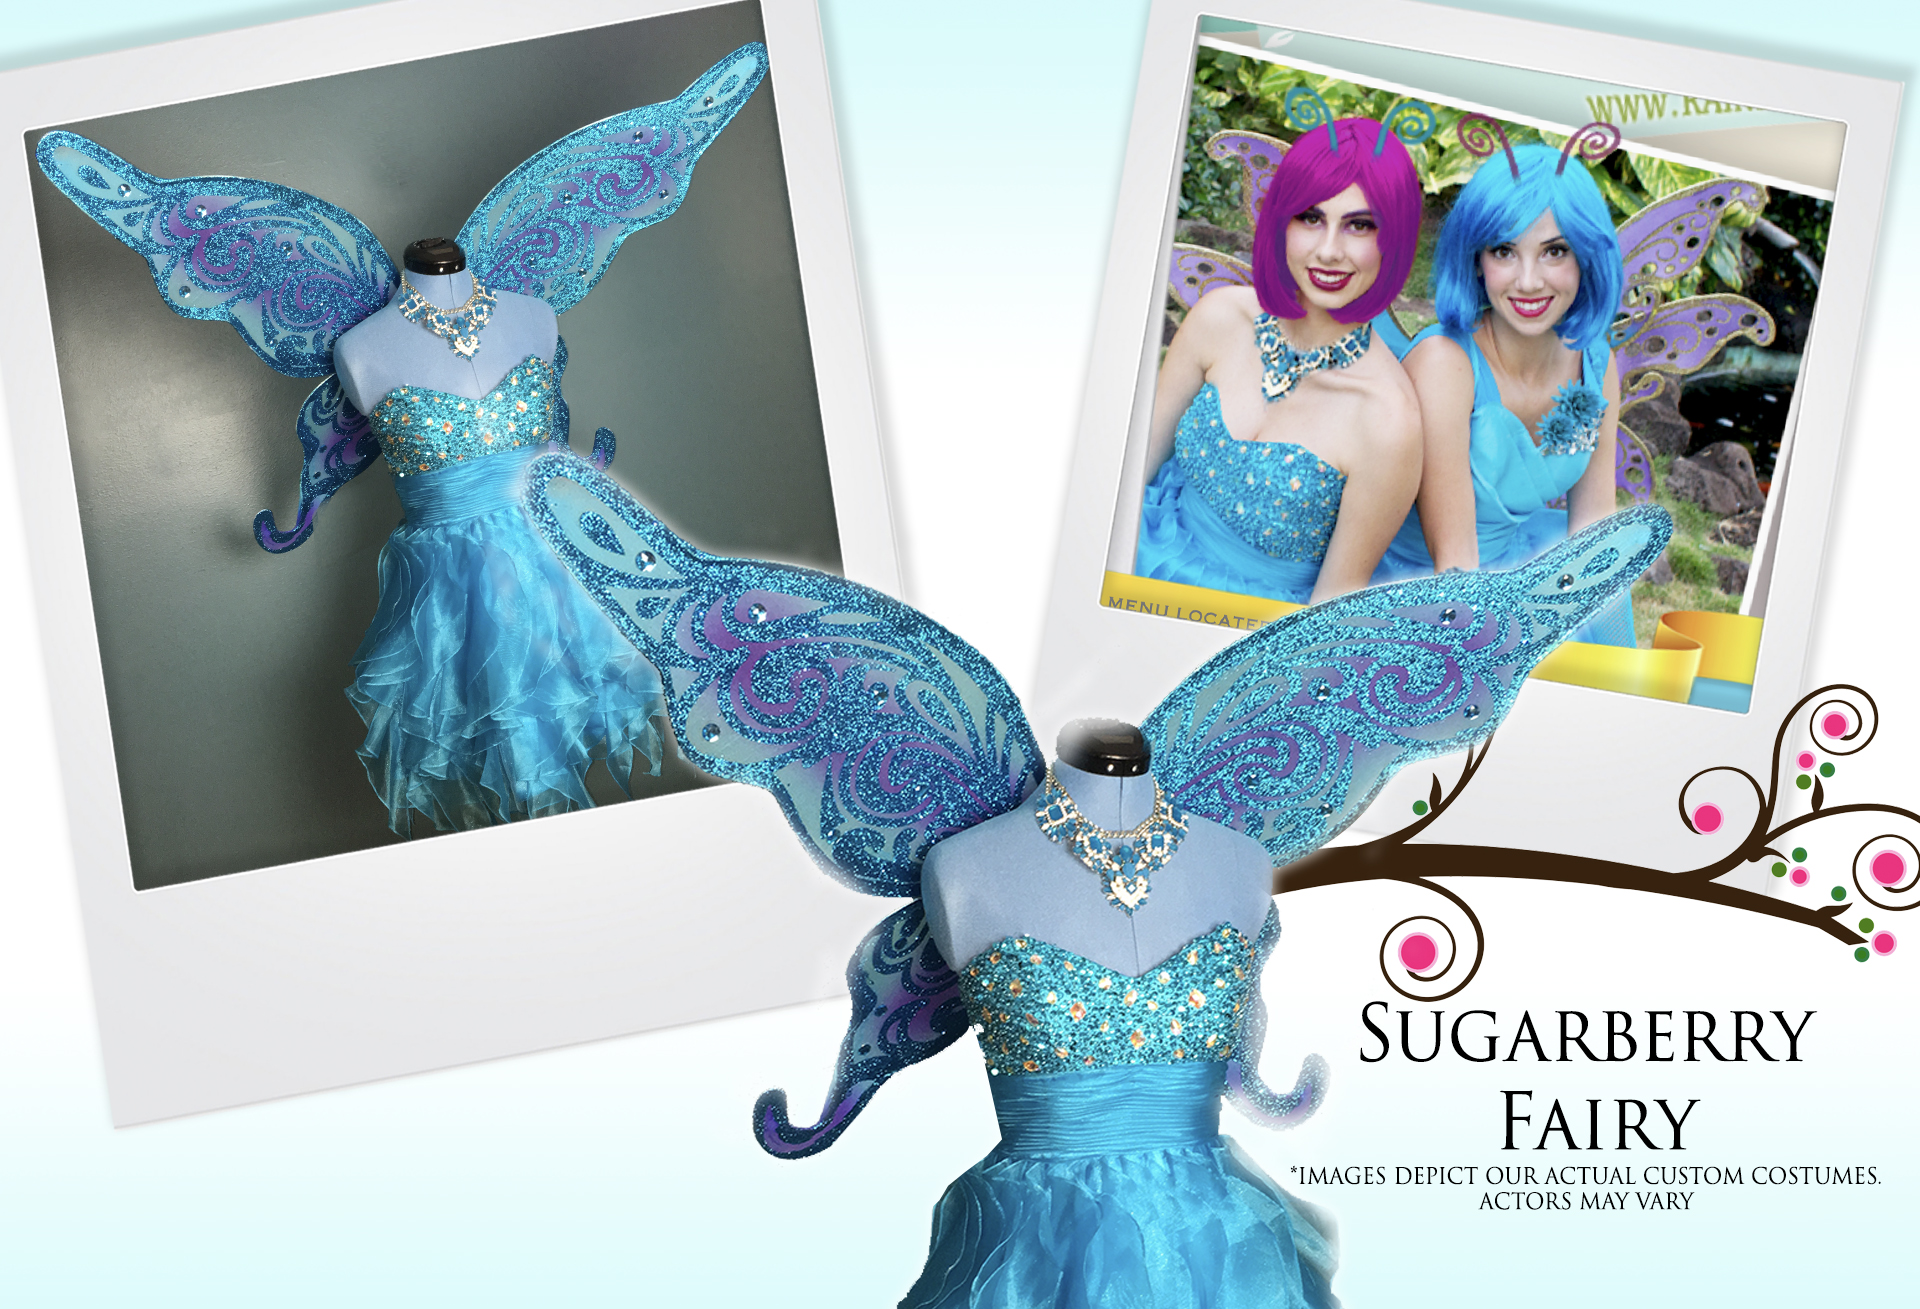 Sugarberry Fairy